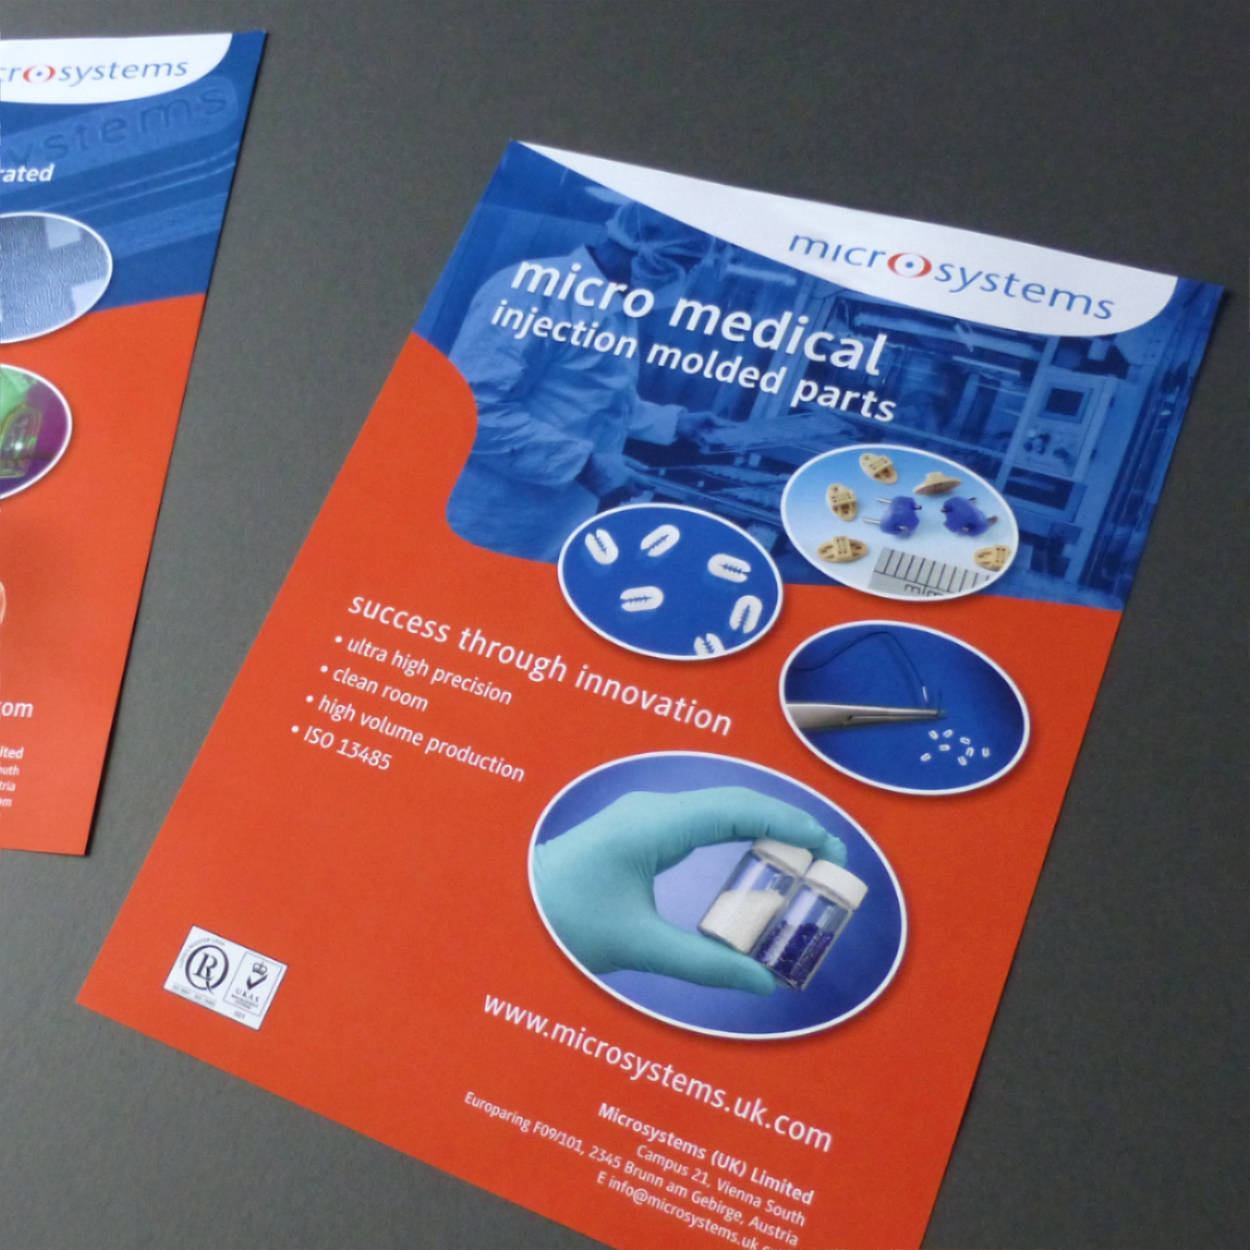 brochure-print-design-microsystems-compamed-orangebox